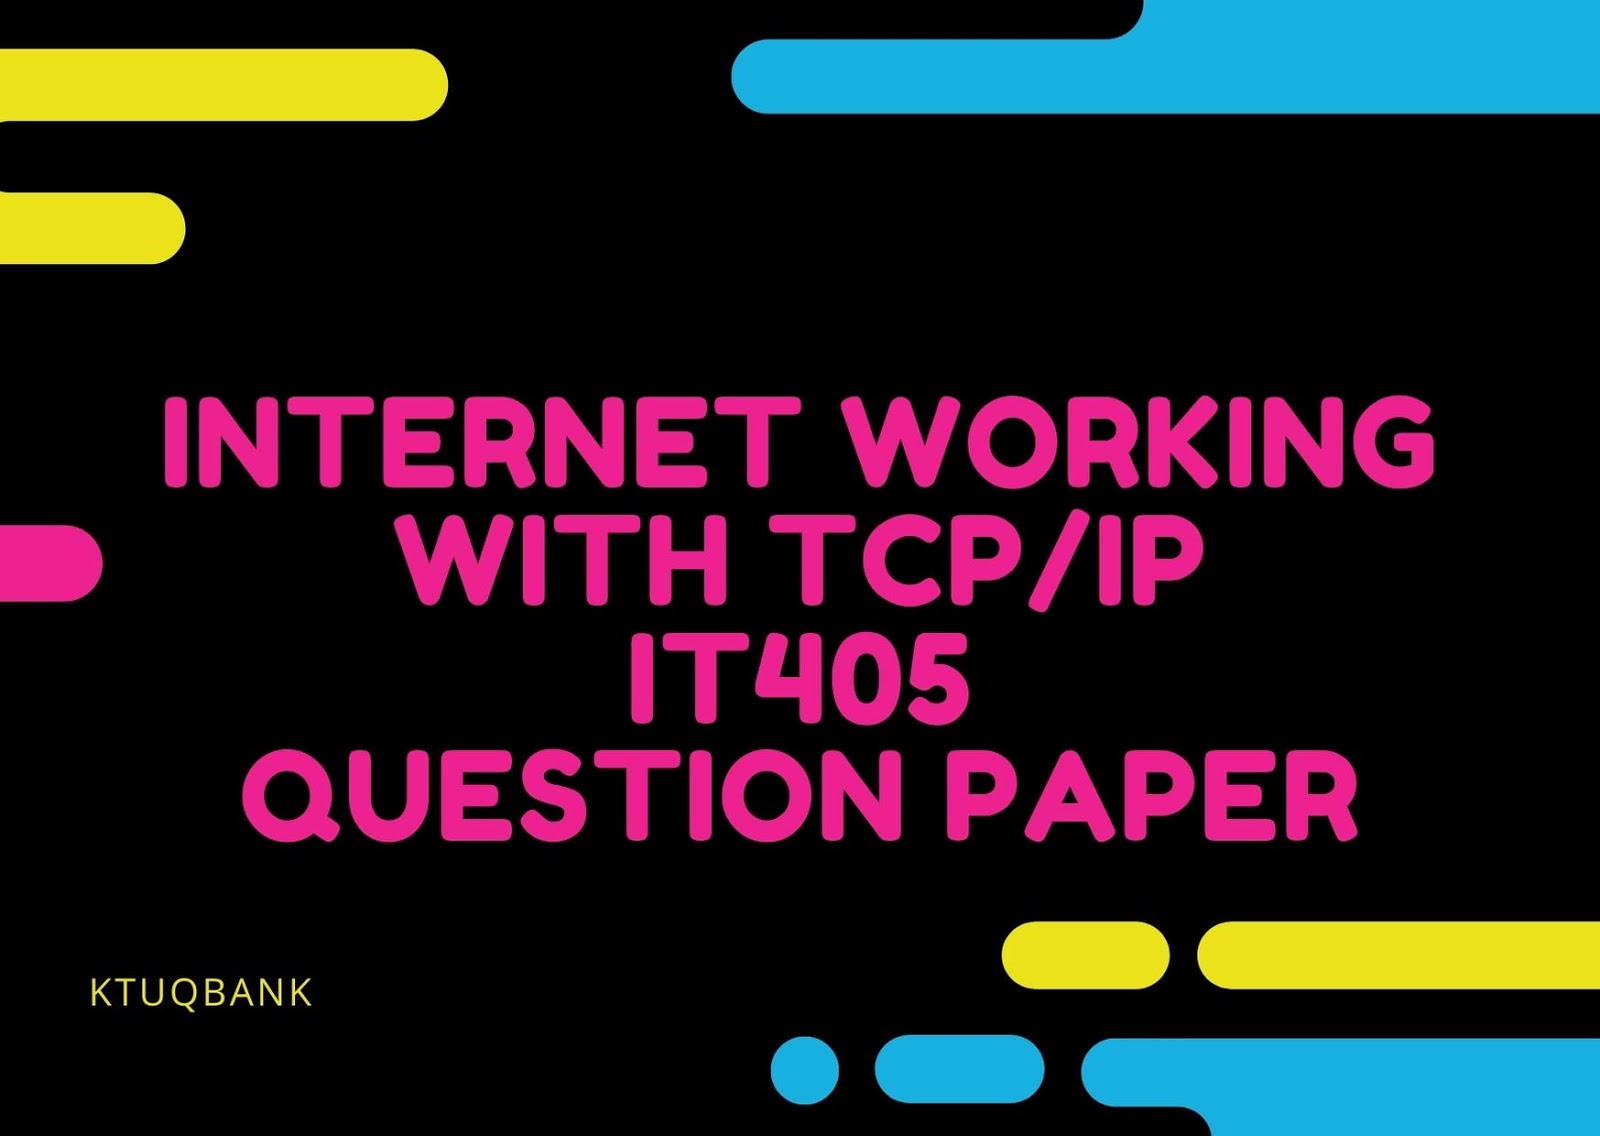 Internet Working with TCP/IP | IT405 | Question Papers (2015 batch)